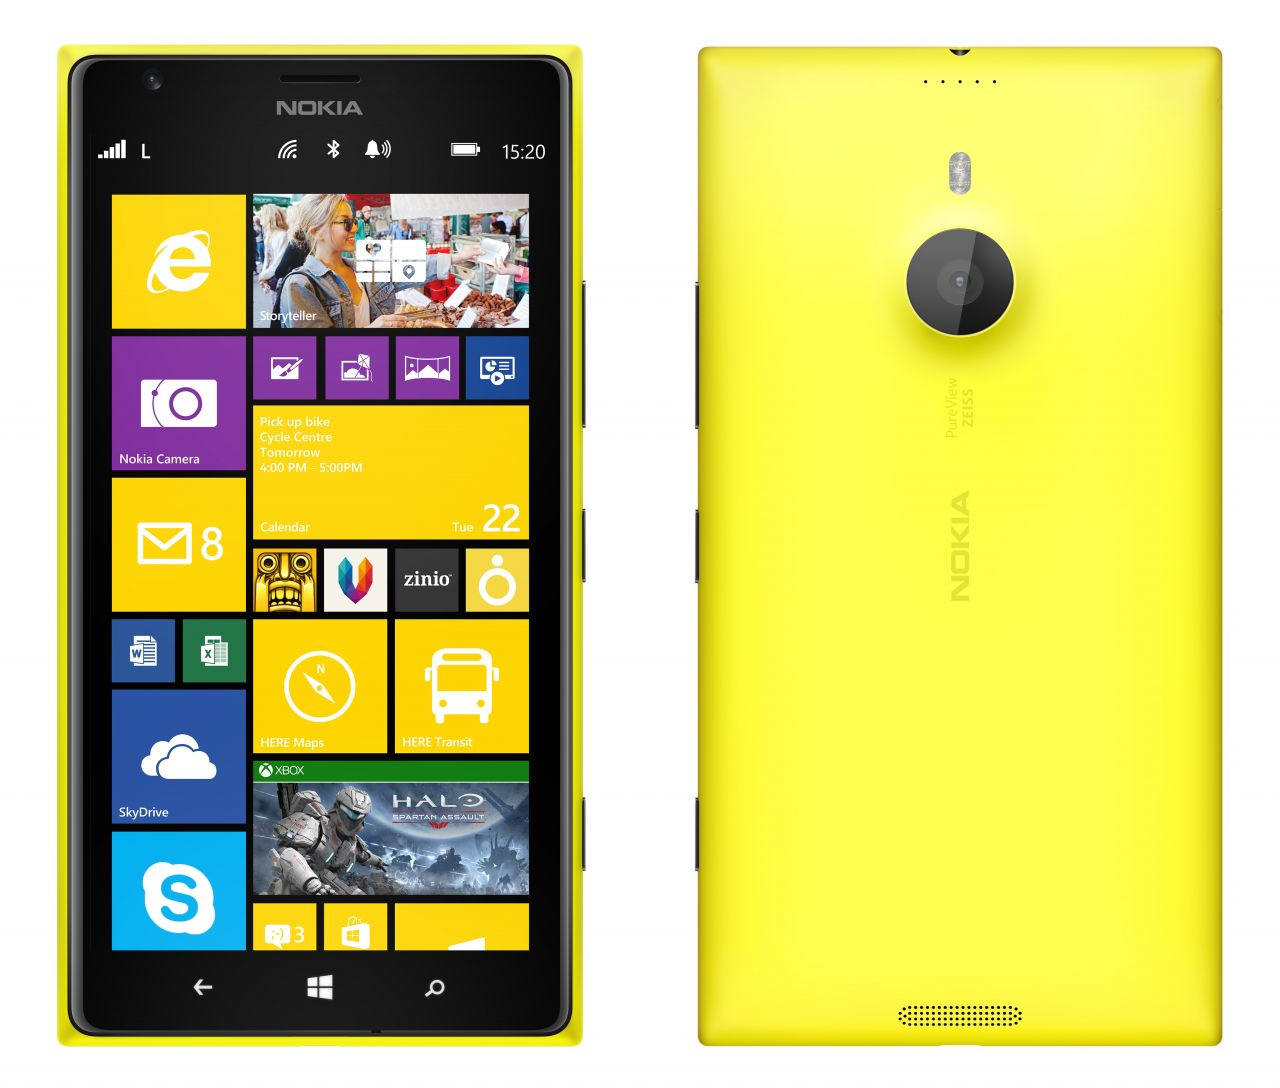 Nokia Lumia 1520 Price In Bangladesh 2019 & Full Specifications